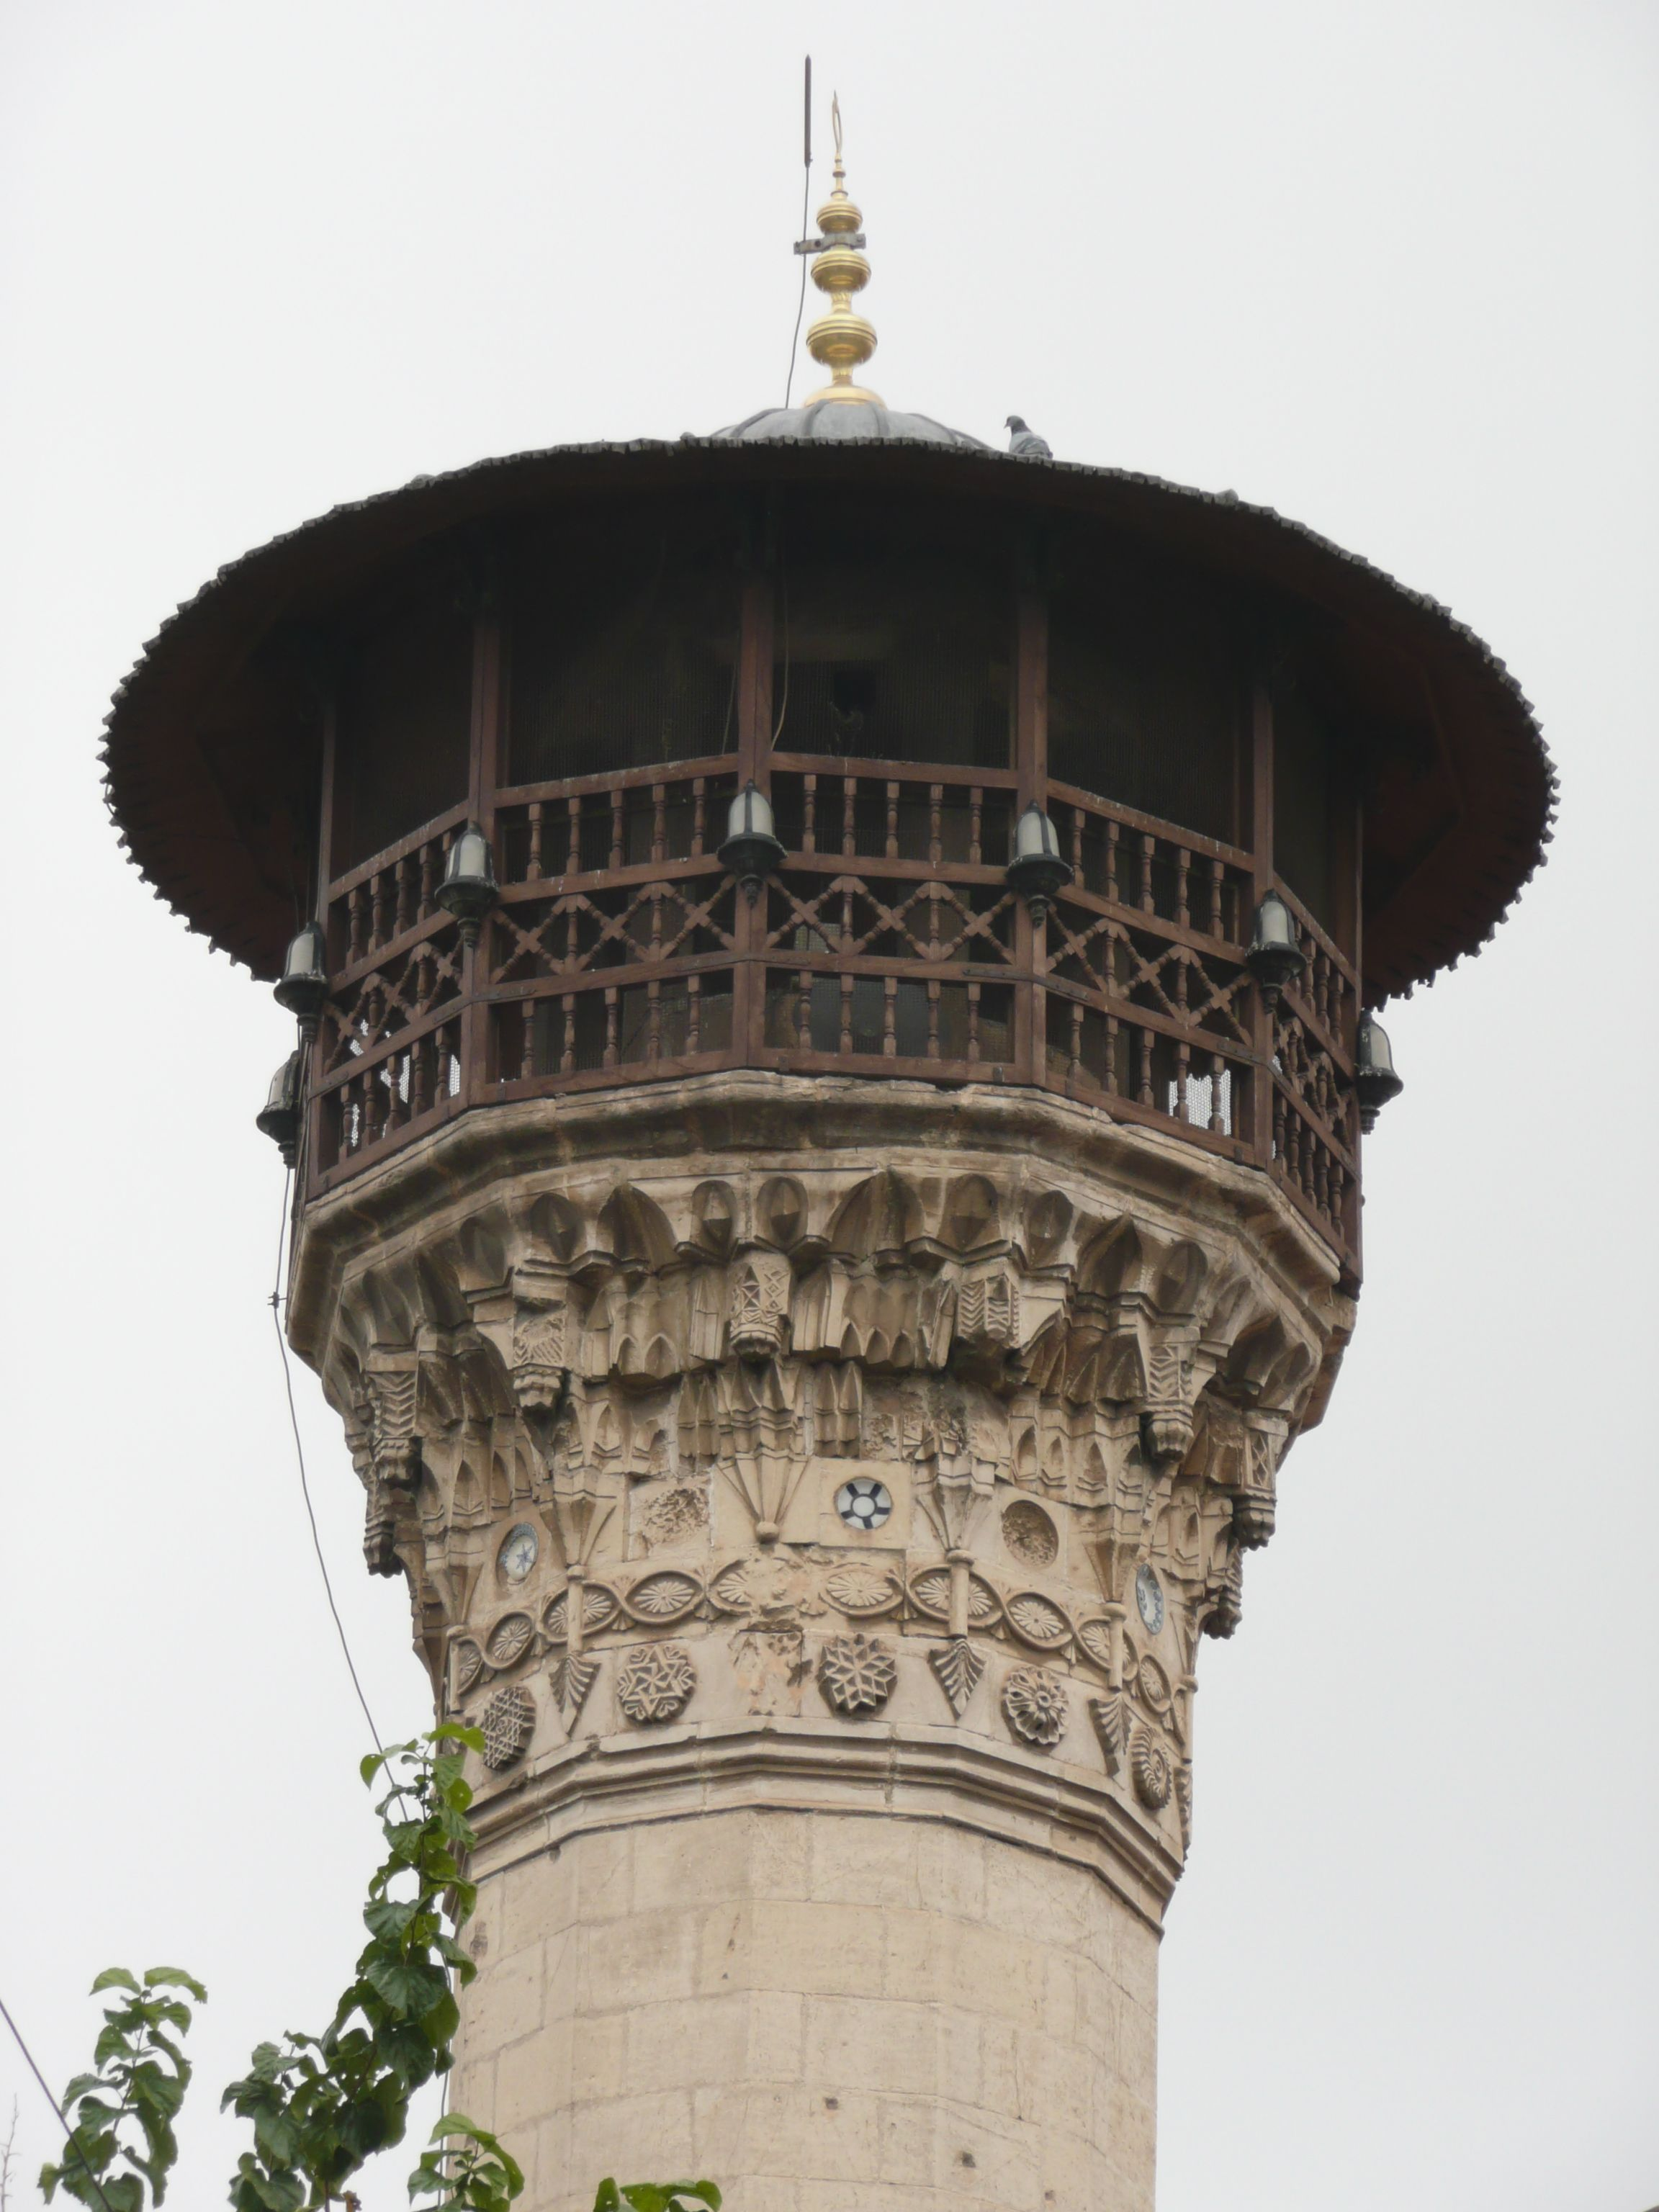 Minaret of the Boyacı Mosque in Gaziantep